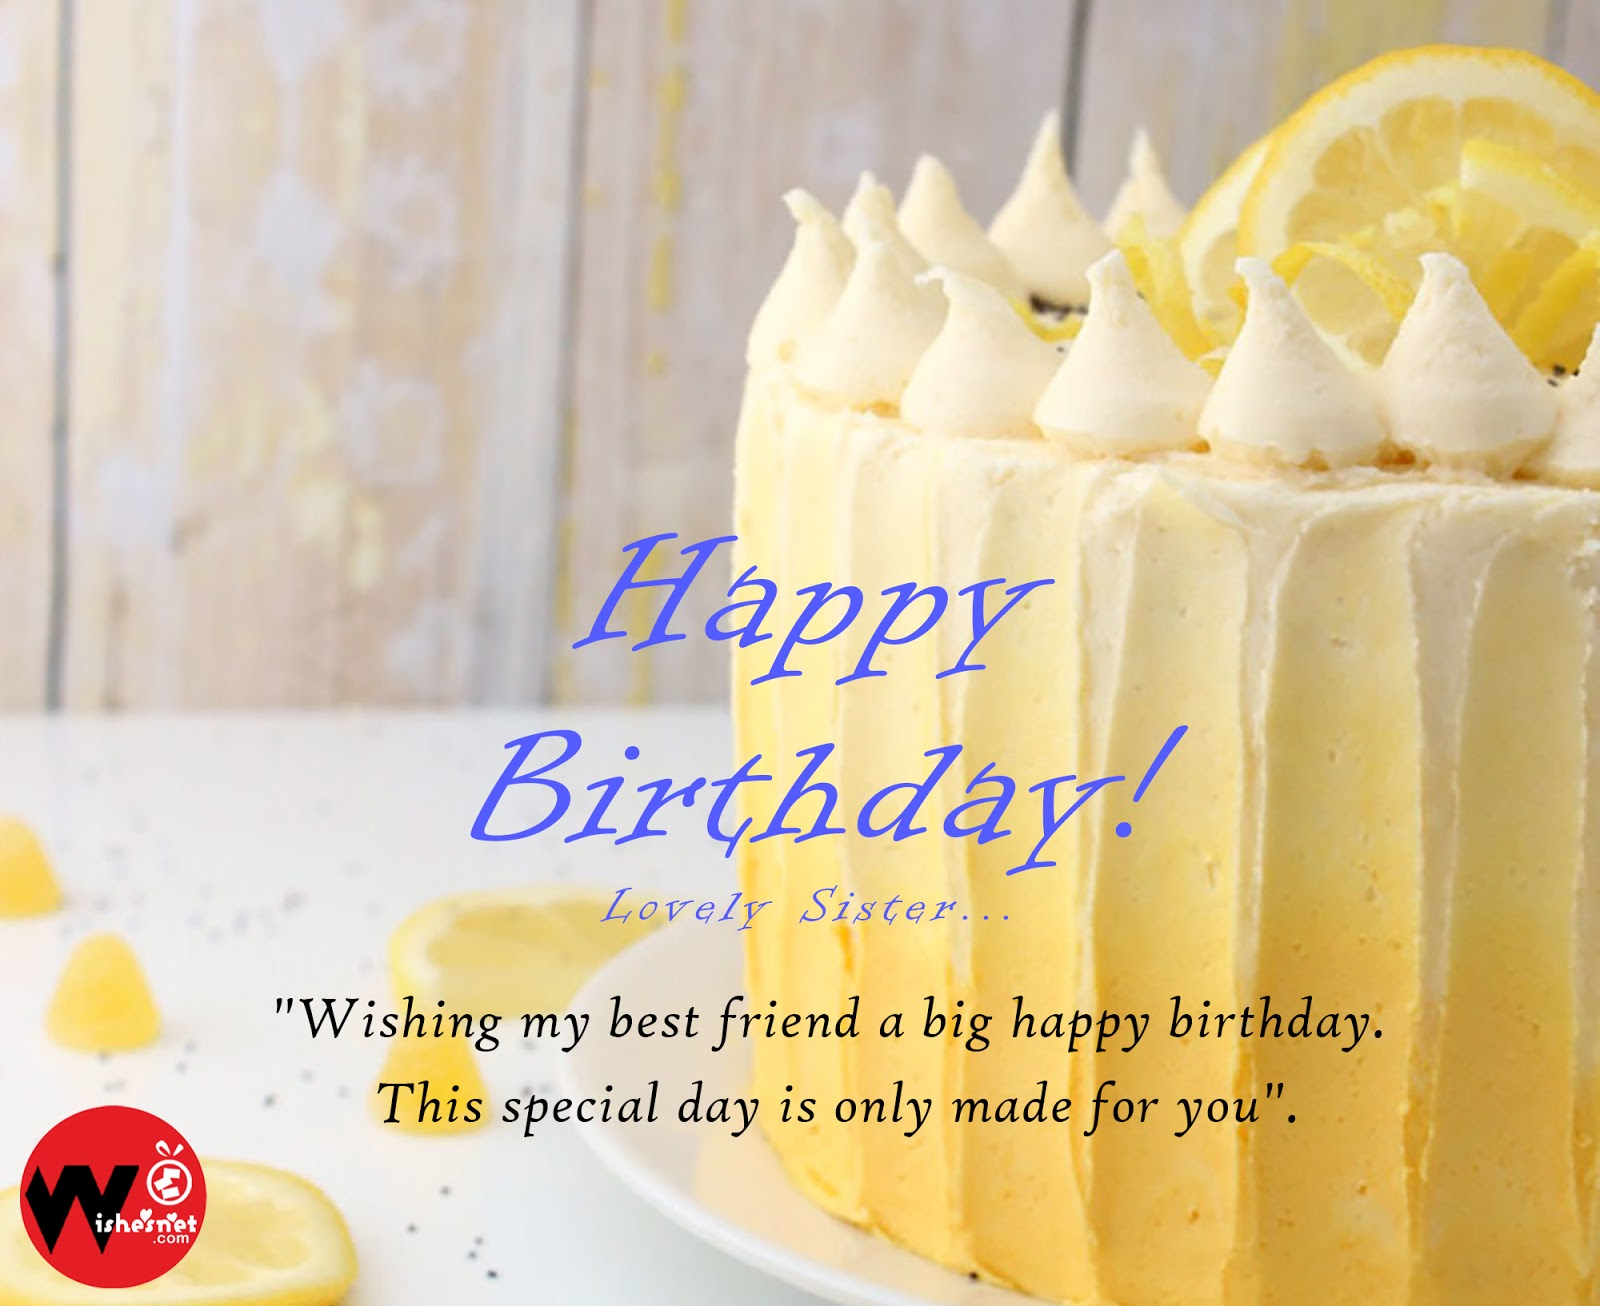 Happy Birthday Cakes For Sister Good Morning Wishes Images And